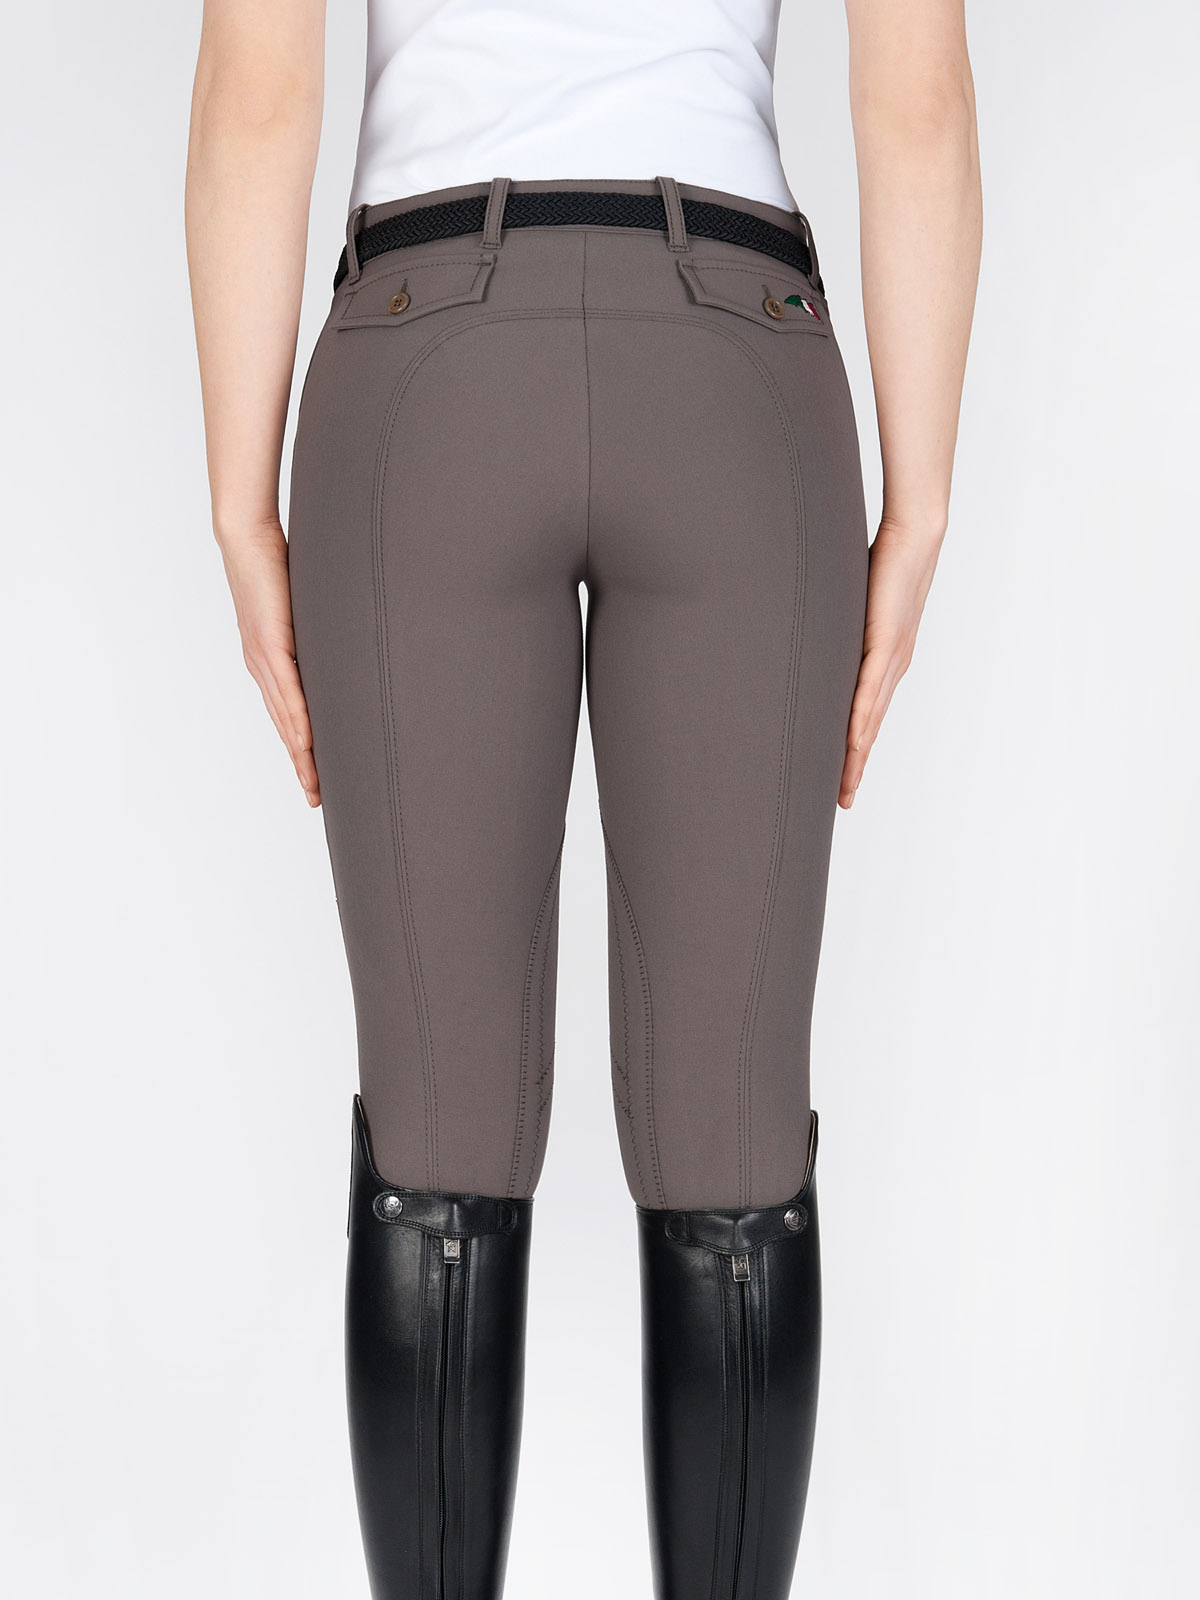 BOSTON - Women's Knee Patch Riding Breeches 1